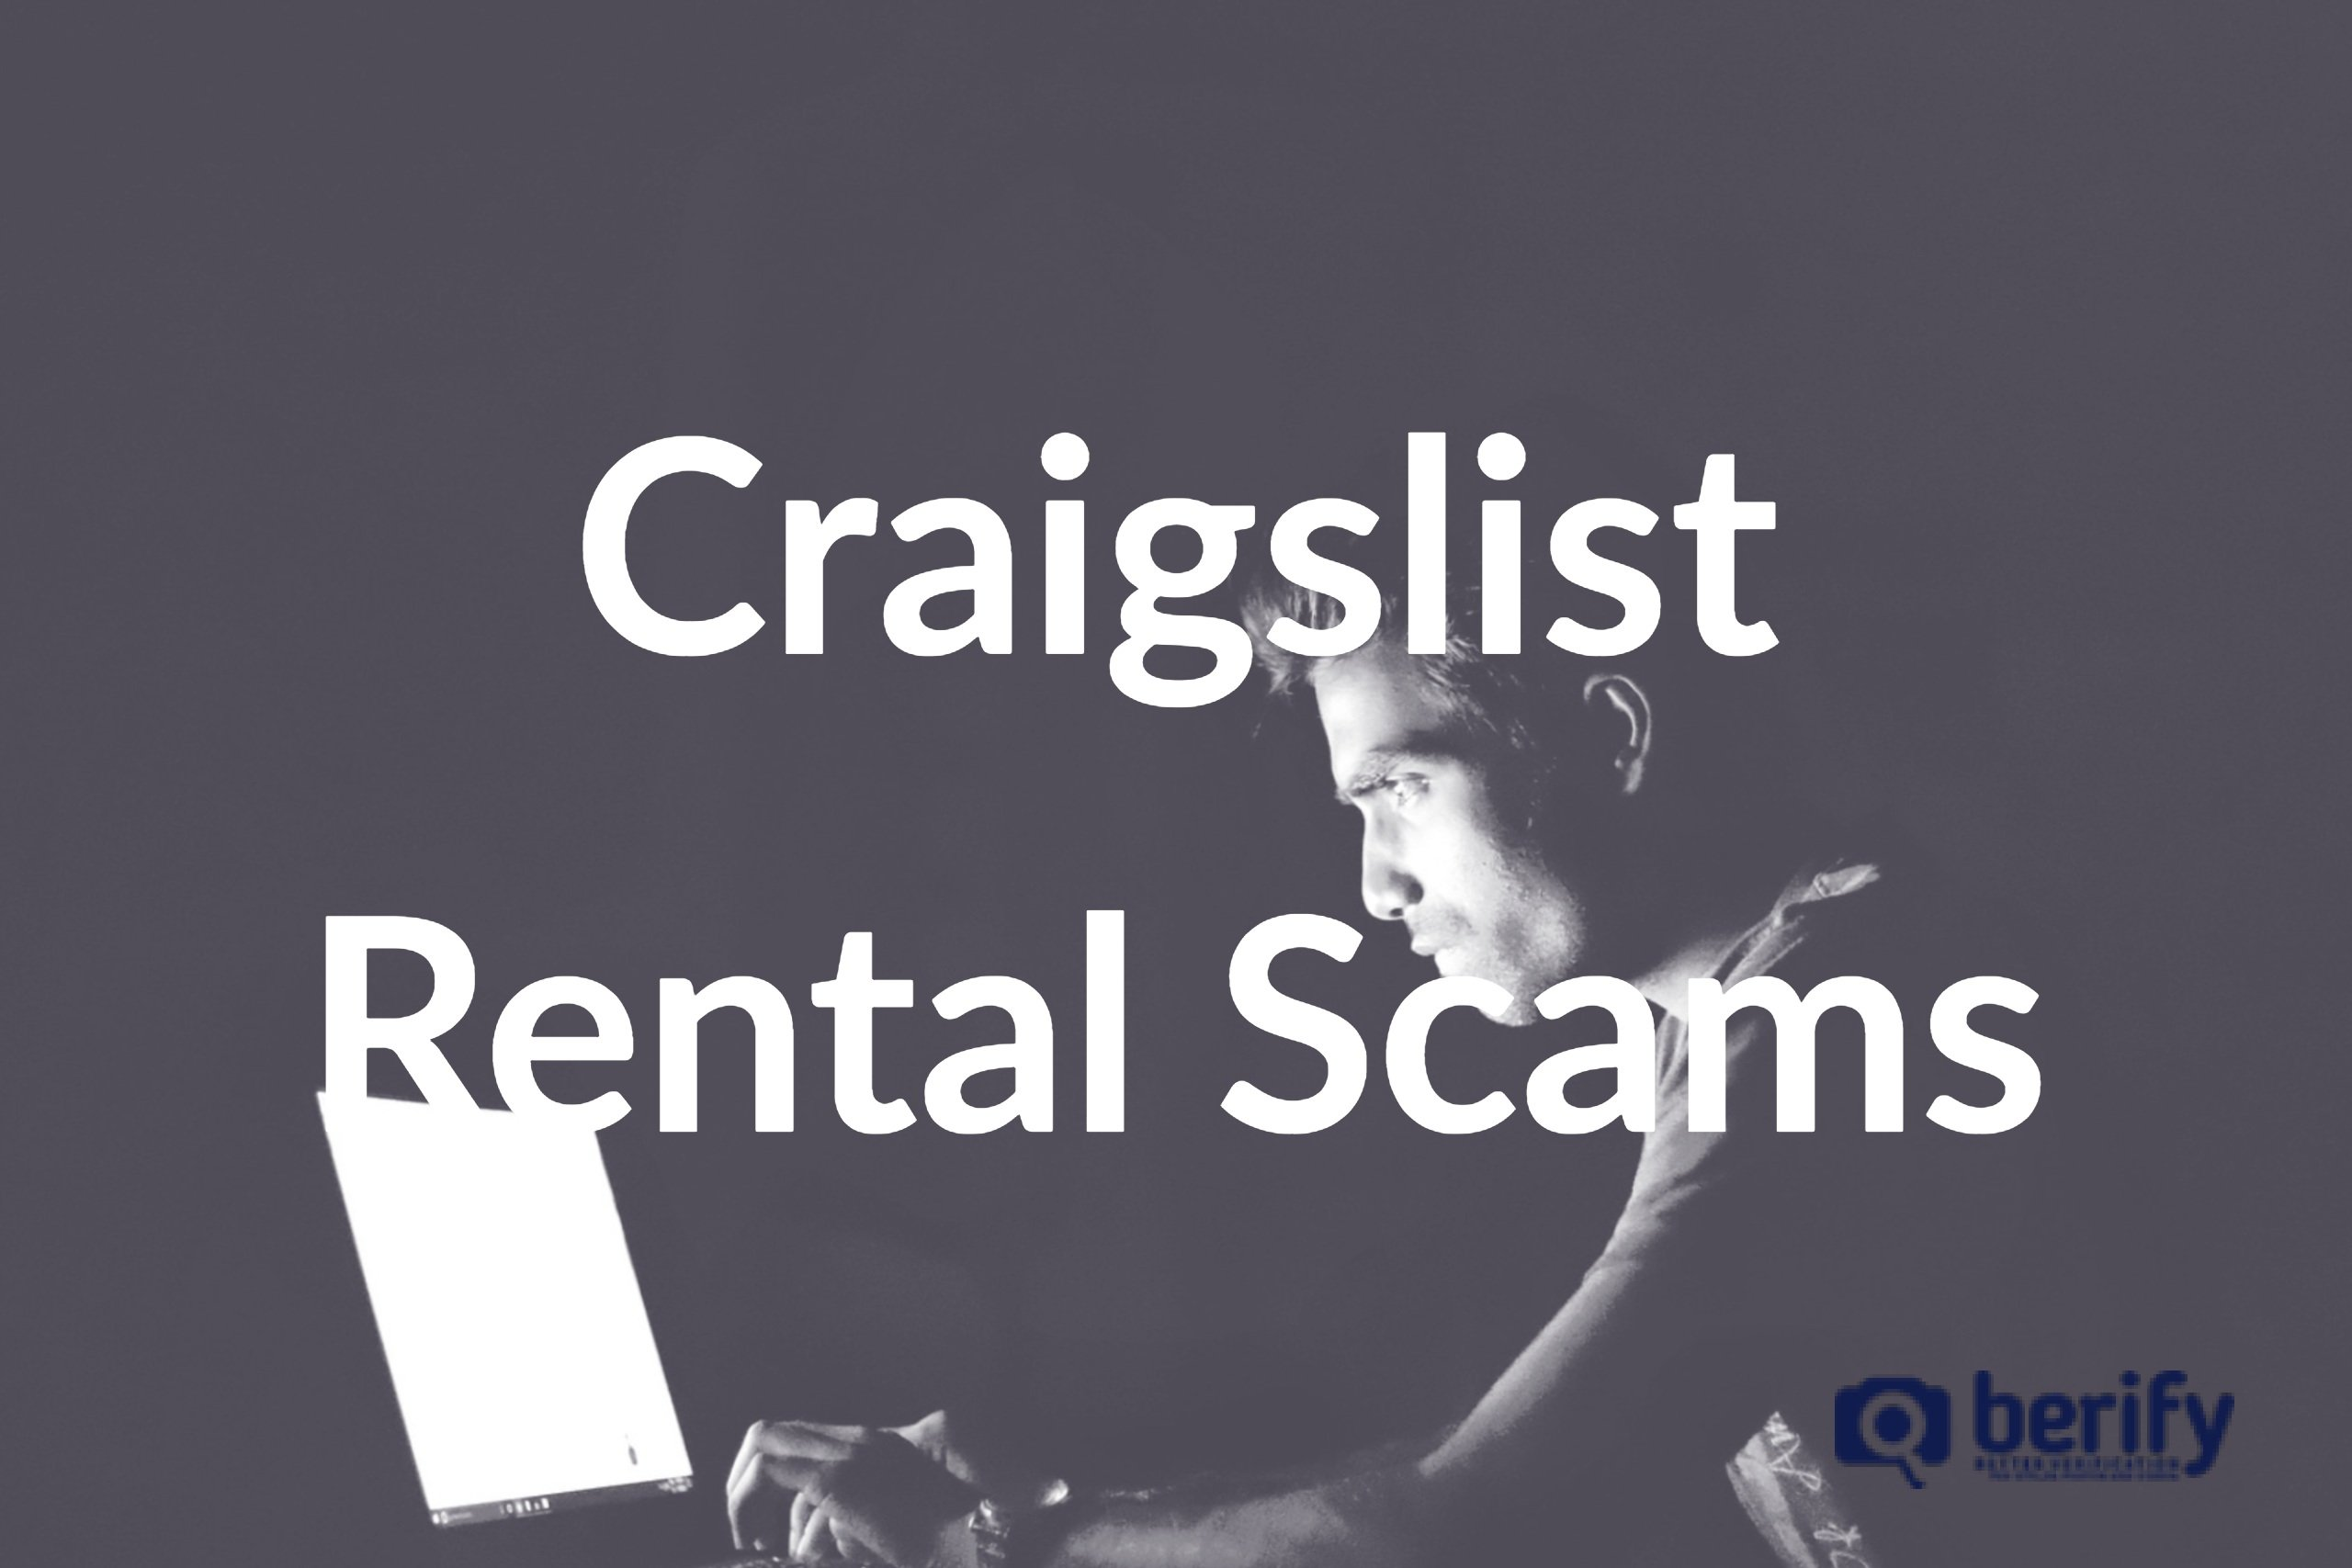 The Ugly Truth About Craigslist Rental Scams - Berify